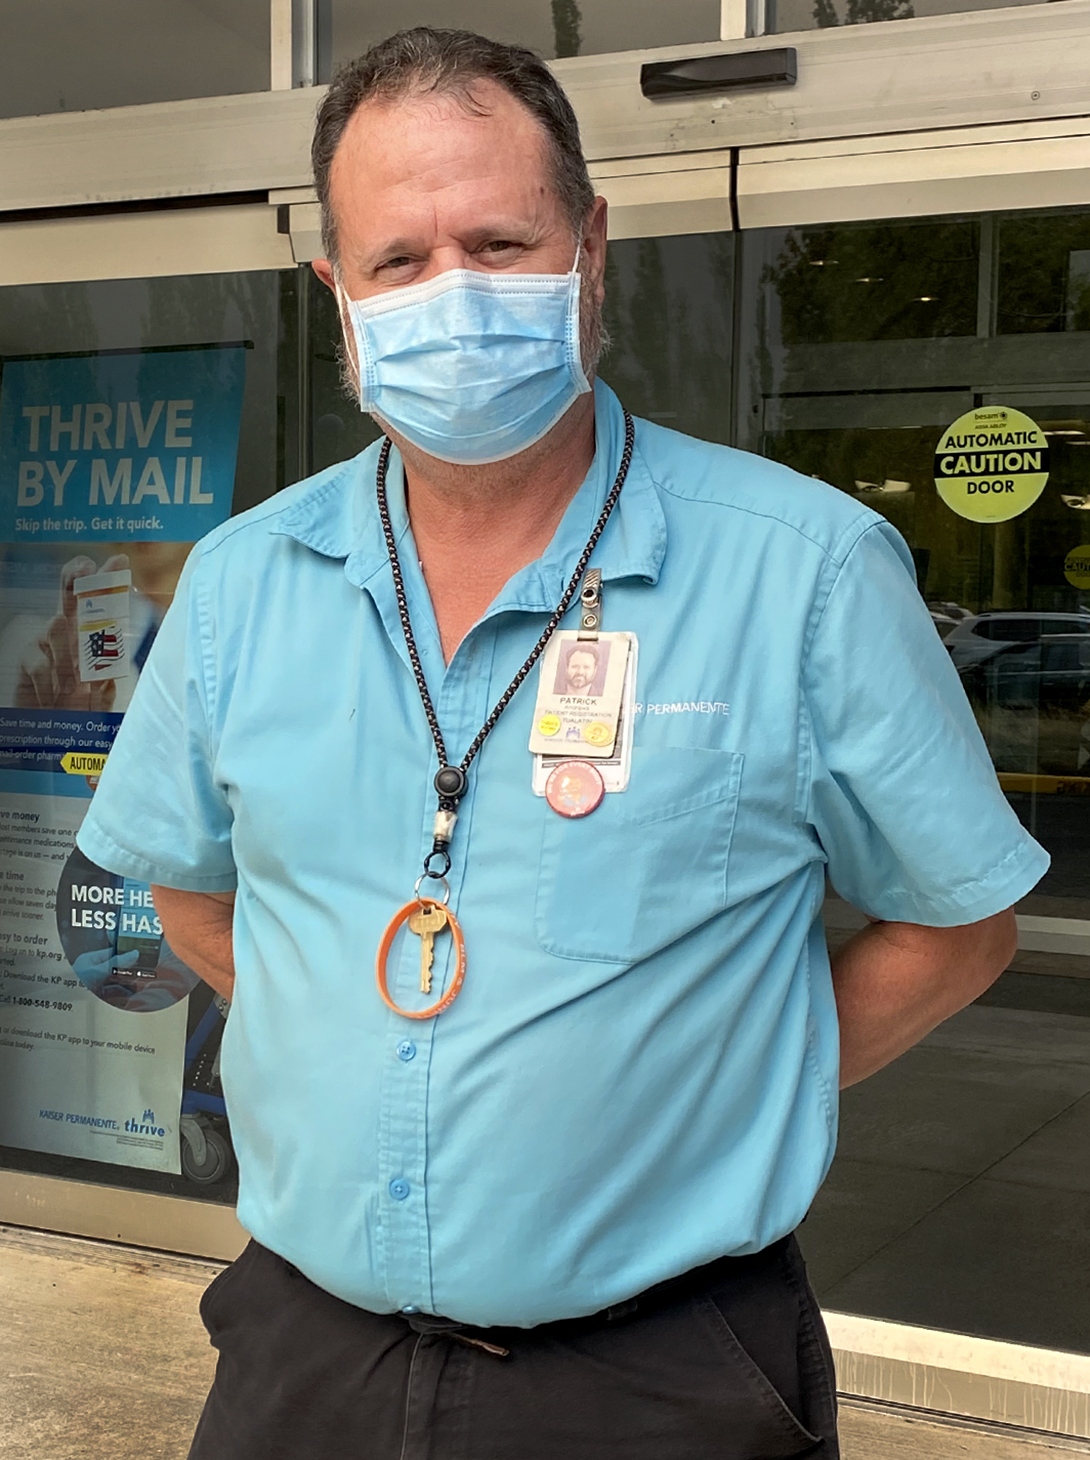 Portrait of a man, wearing a teal shirt and a mask